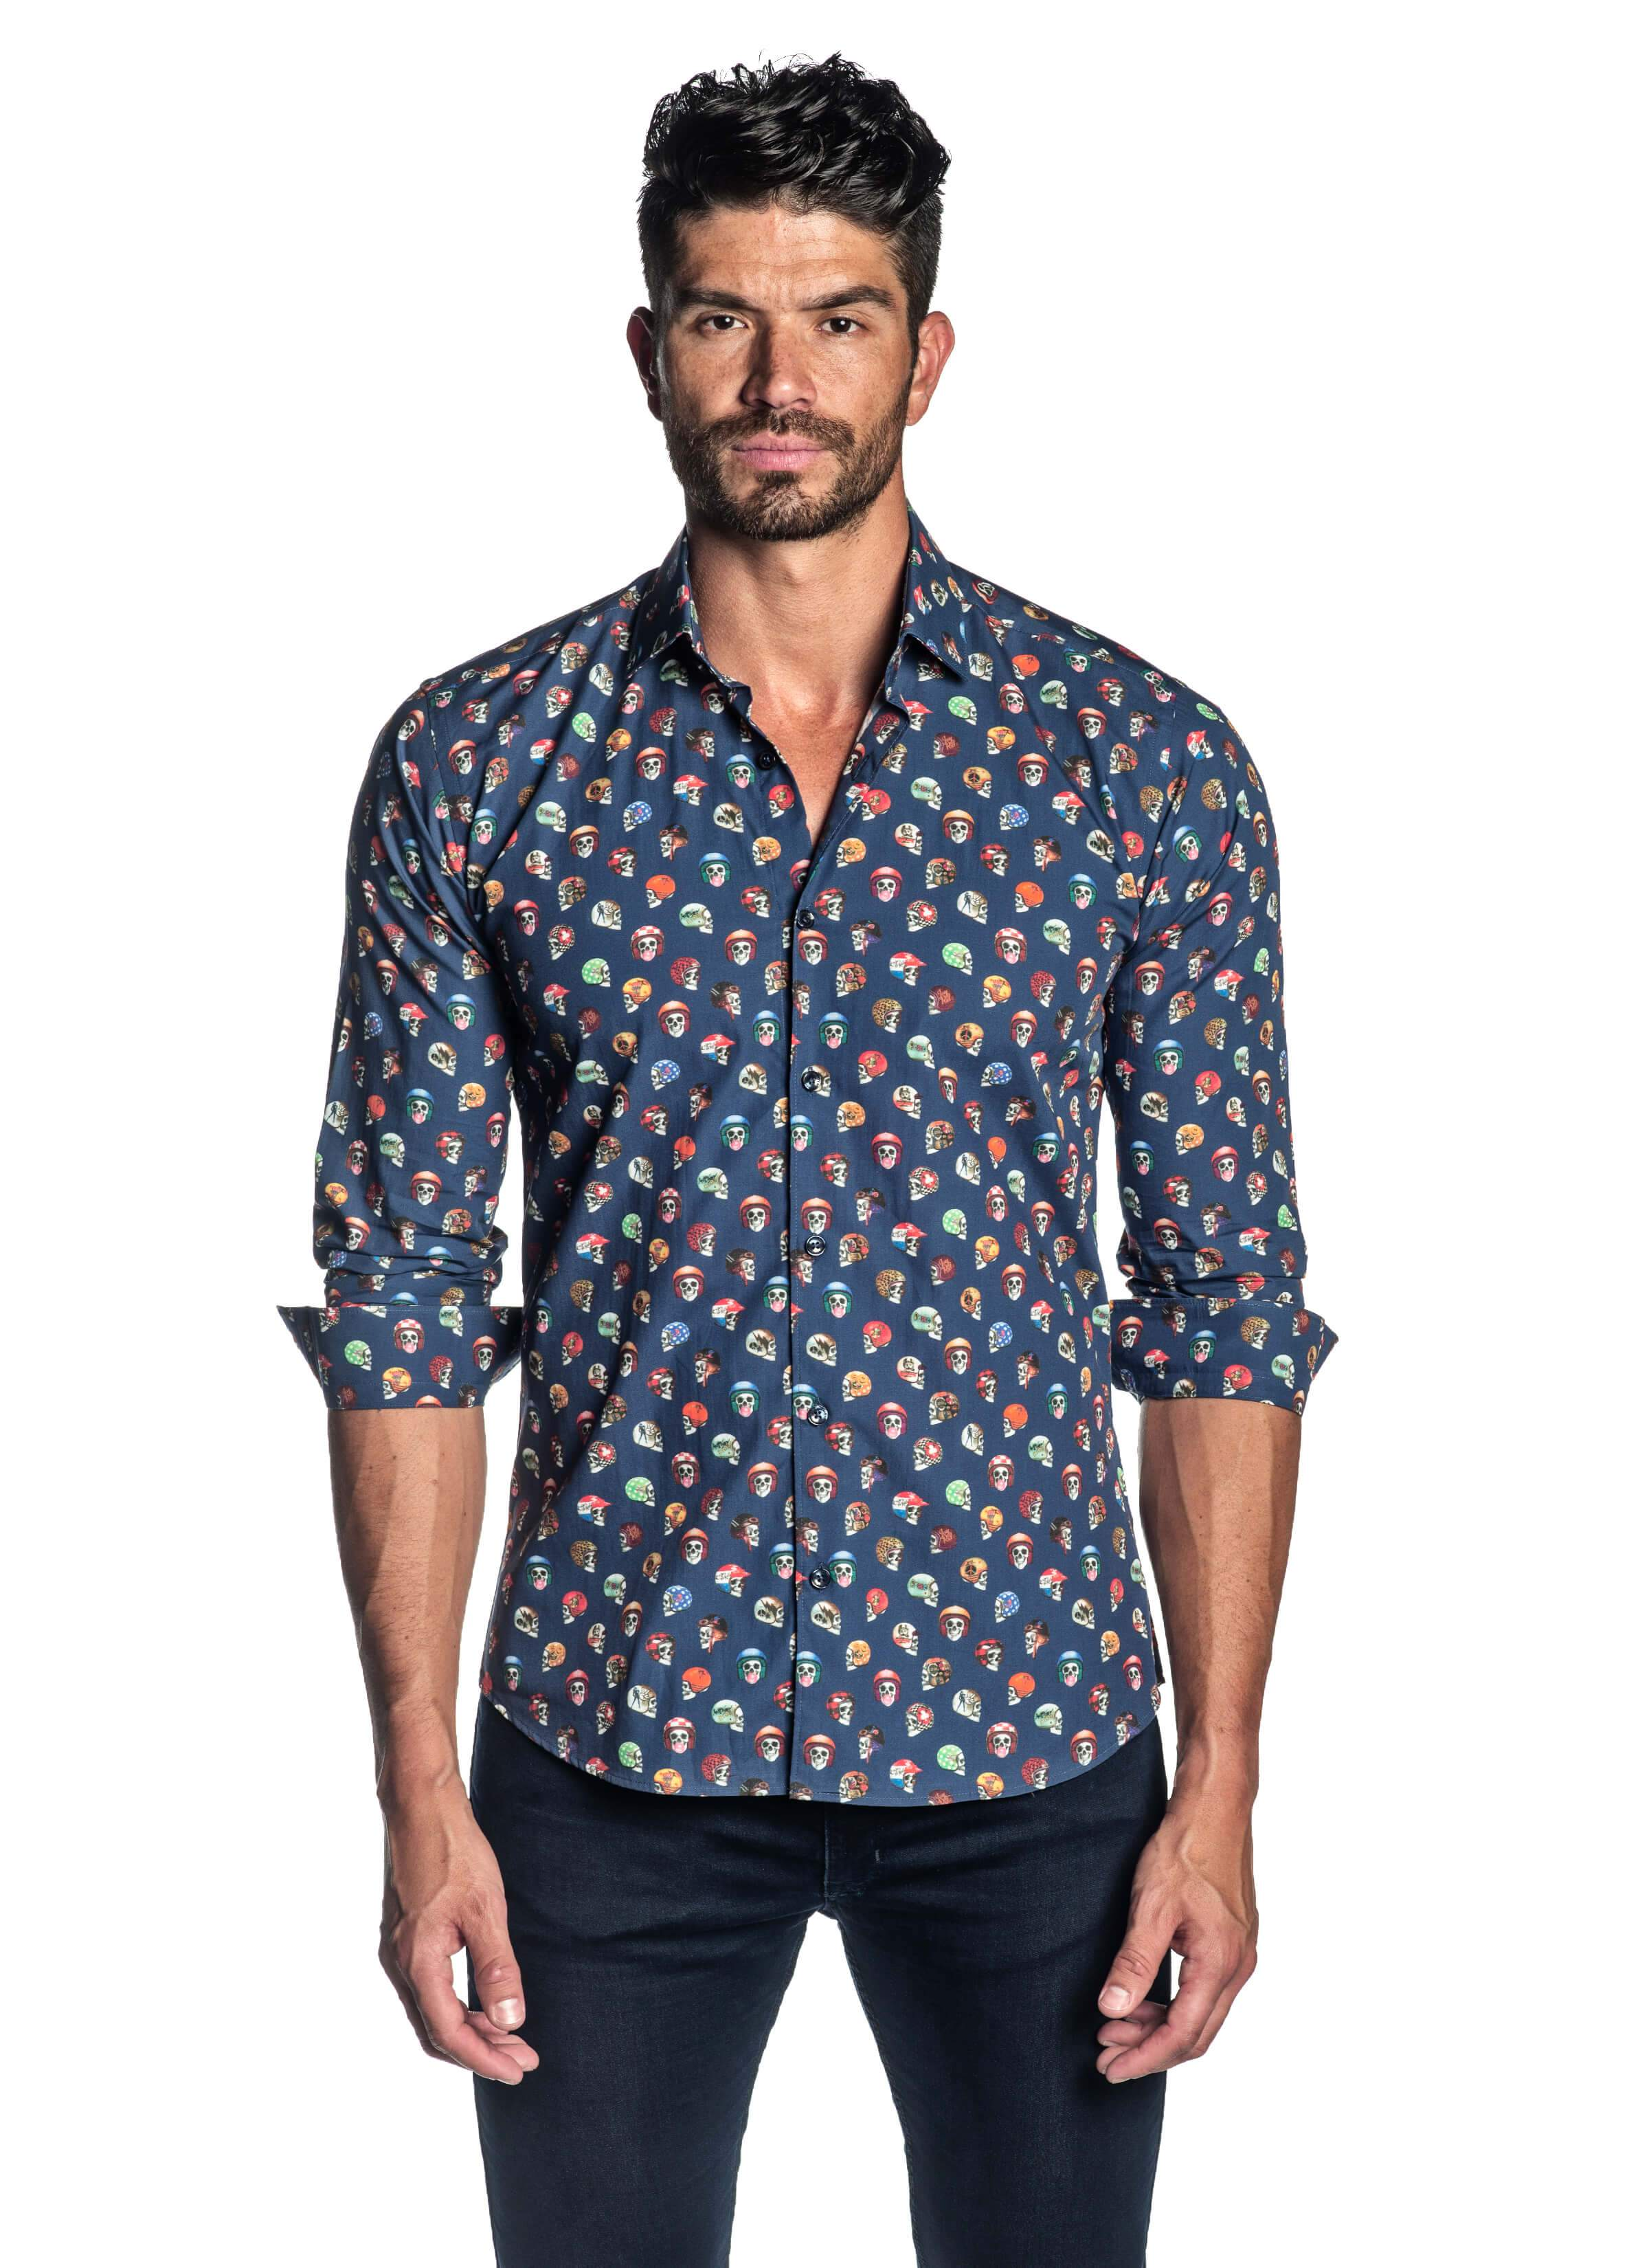 Navy Skulls Printed Shirt for Men T-2082 - Front - Jared Lang